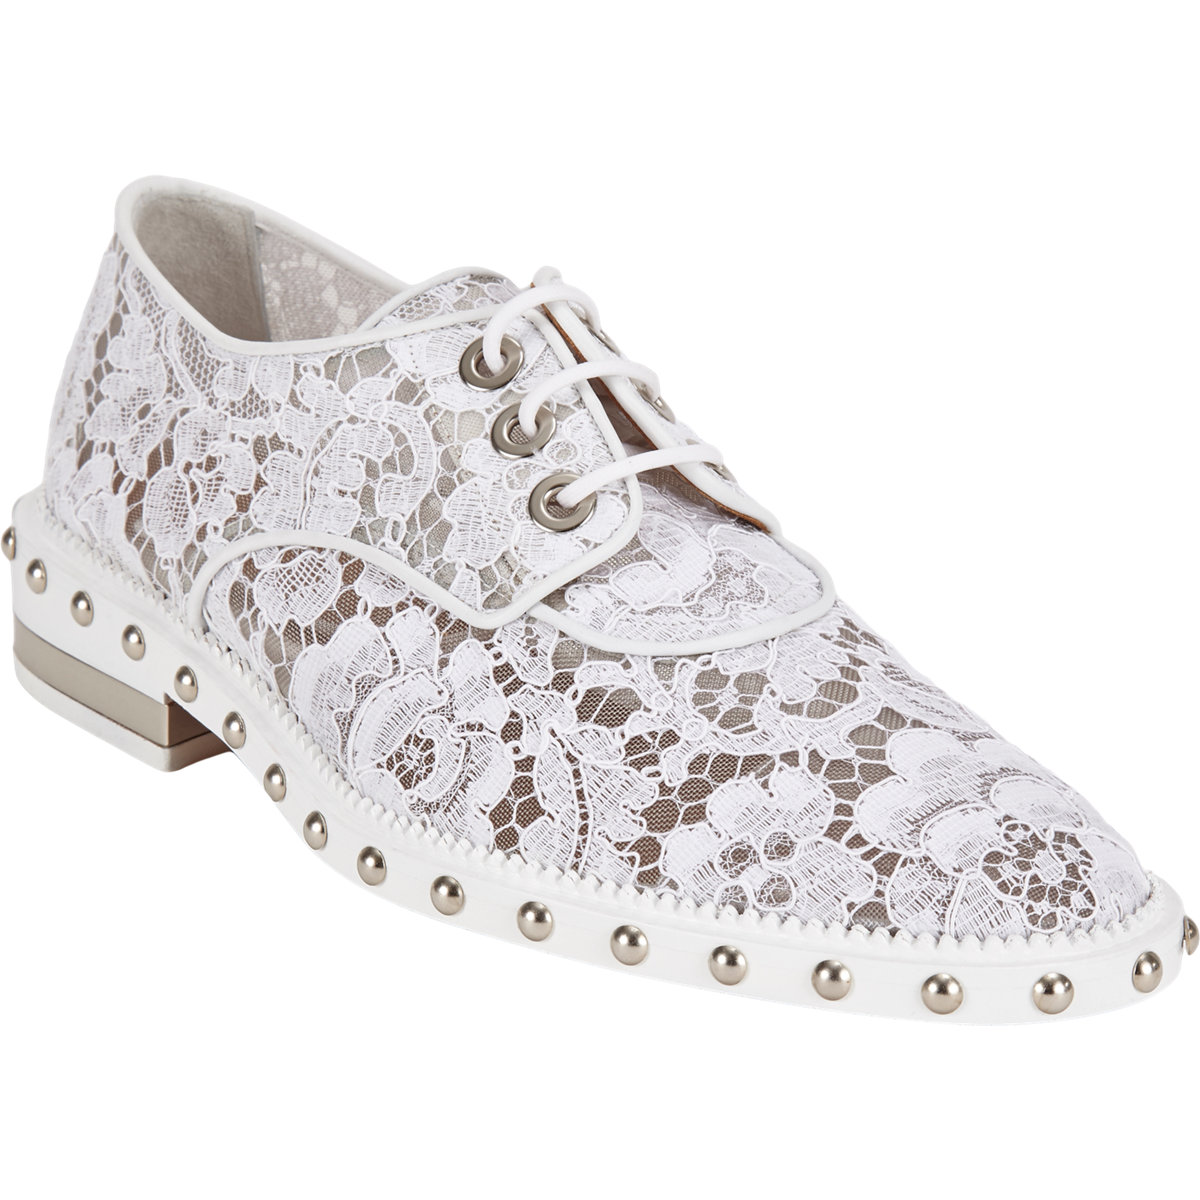 Givenchy White Lace Studded Lace-Up Oxfords ($1,295)